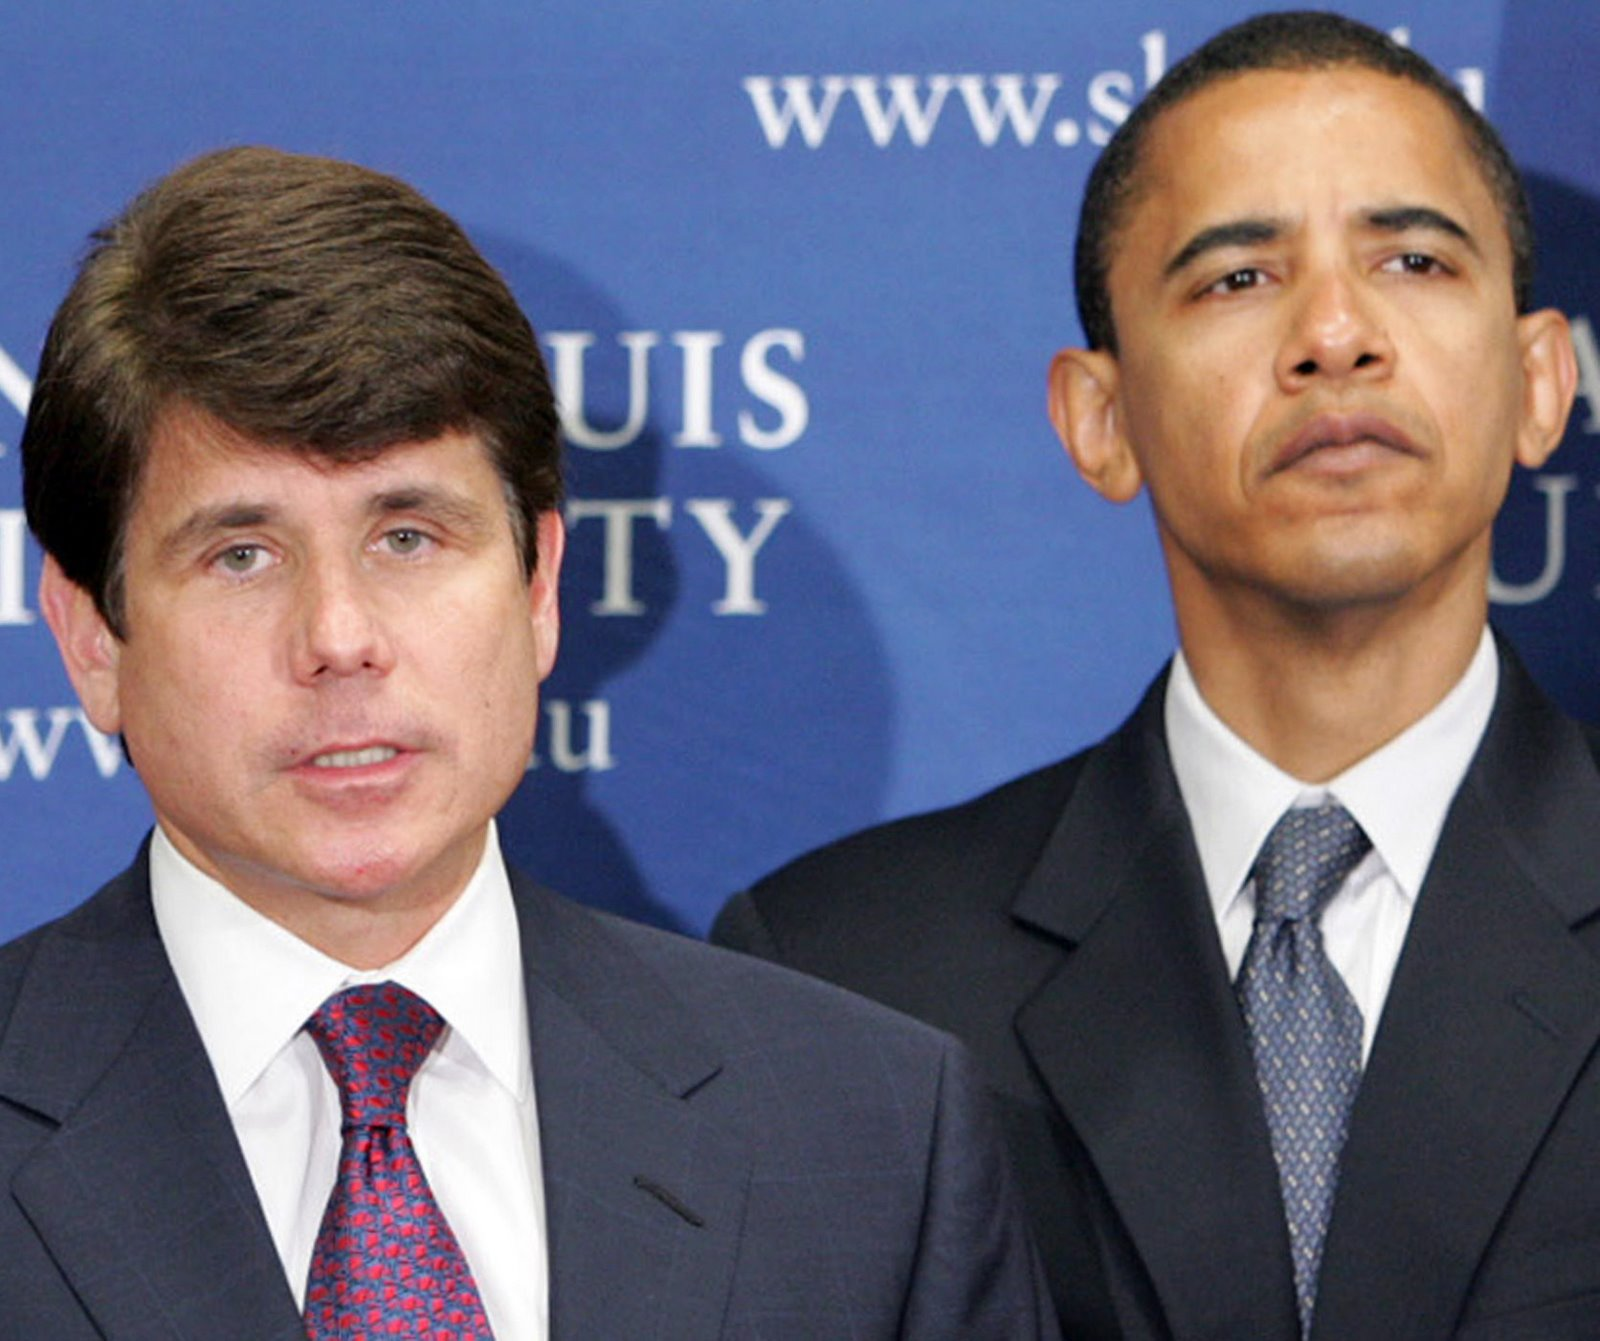 Blagojevich Attorneys Want to Subpoena President Obama: A drowning man will clutch at a straw.